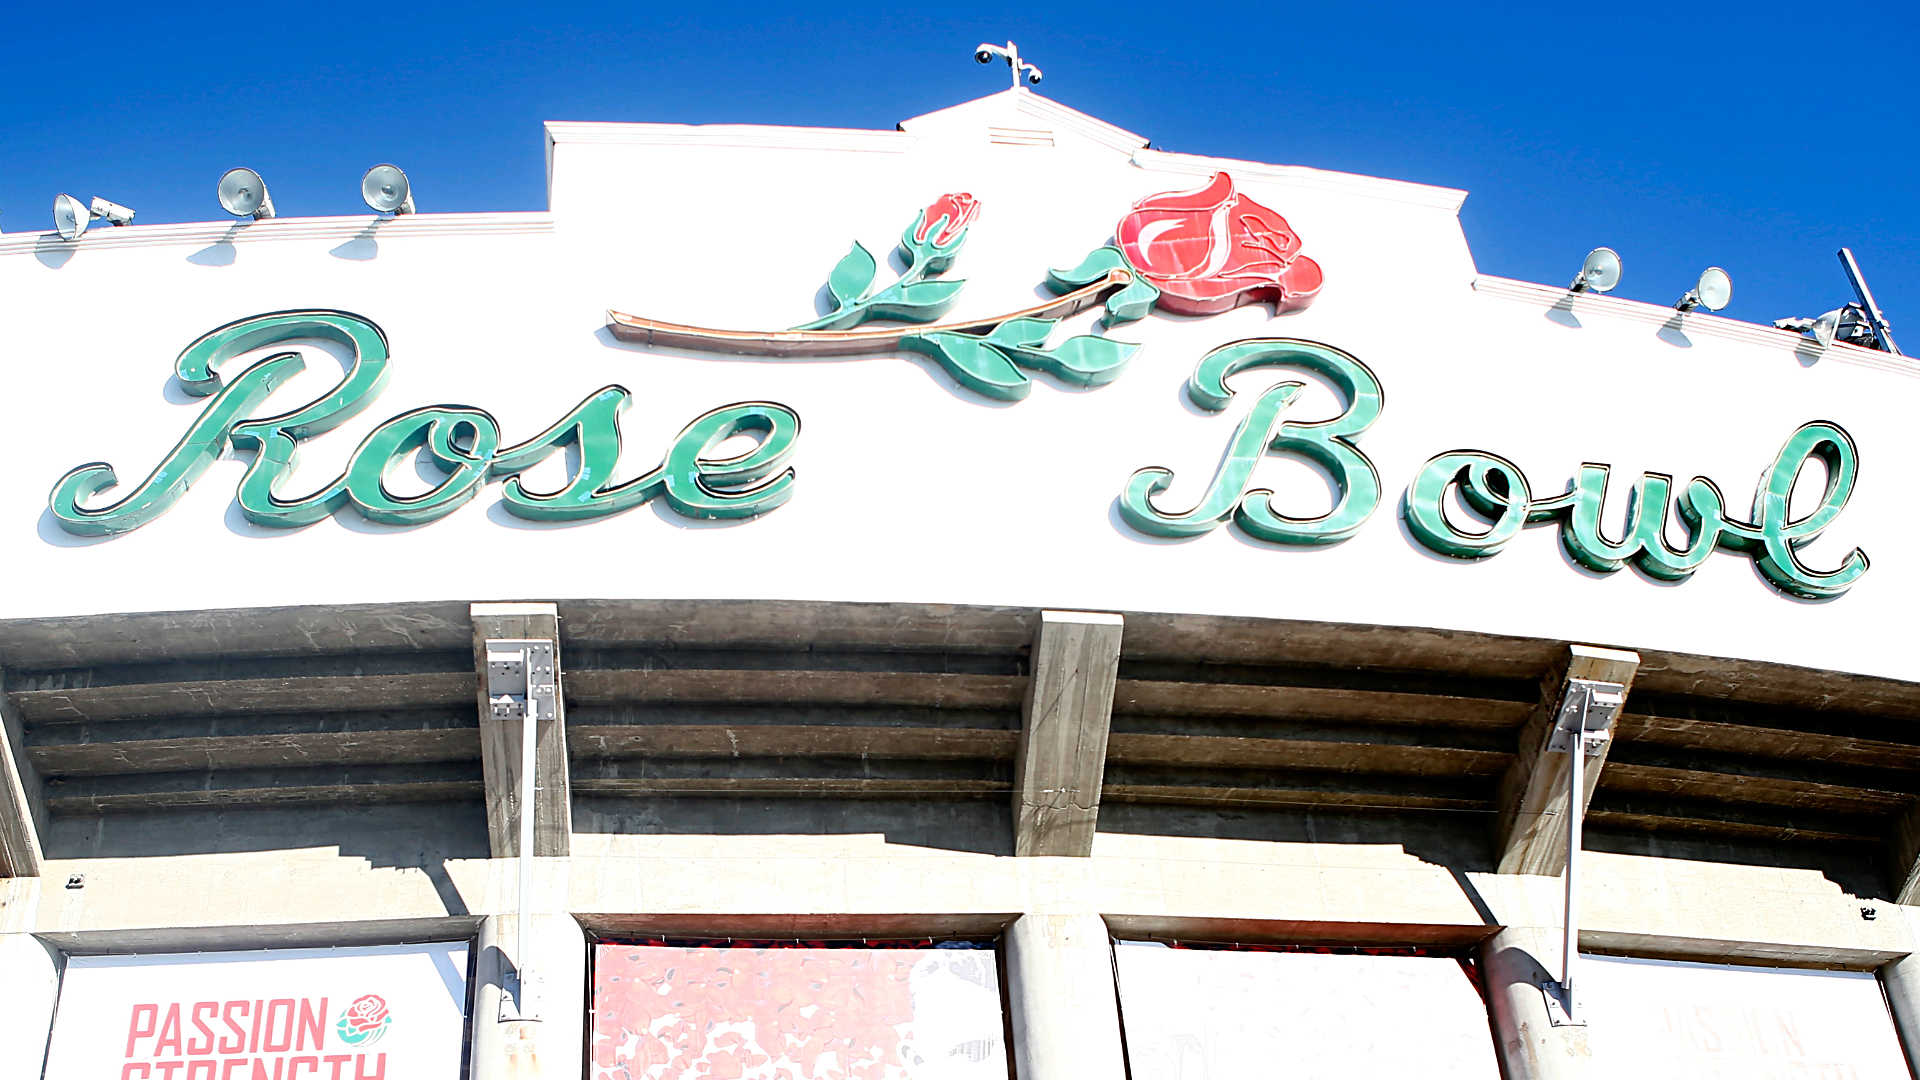 The reason Rose Bowl game kept its name despite move to AT&T Stadium in Texas